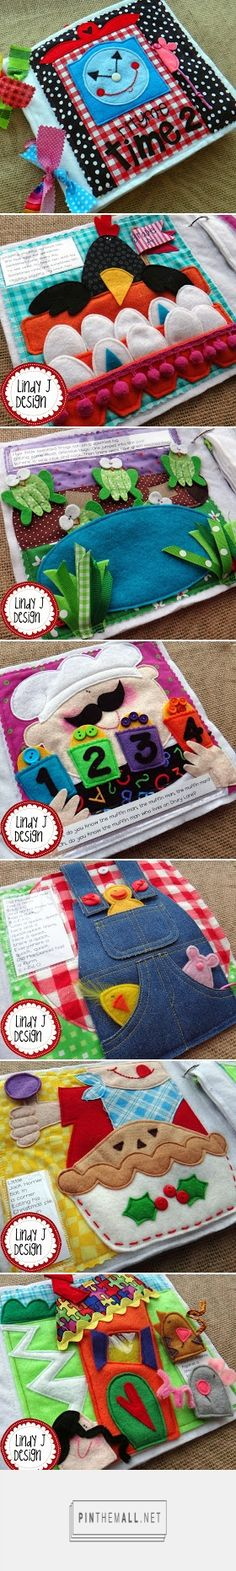 Lindy J Design: New Quiet Books to Share! http://lindyjdesigns.blogspot.com.au/2015/01/new-quiet-books-to-share.html?m=1 - created on 2015-10-02 07:52:40